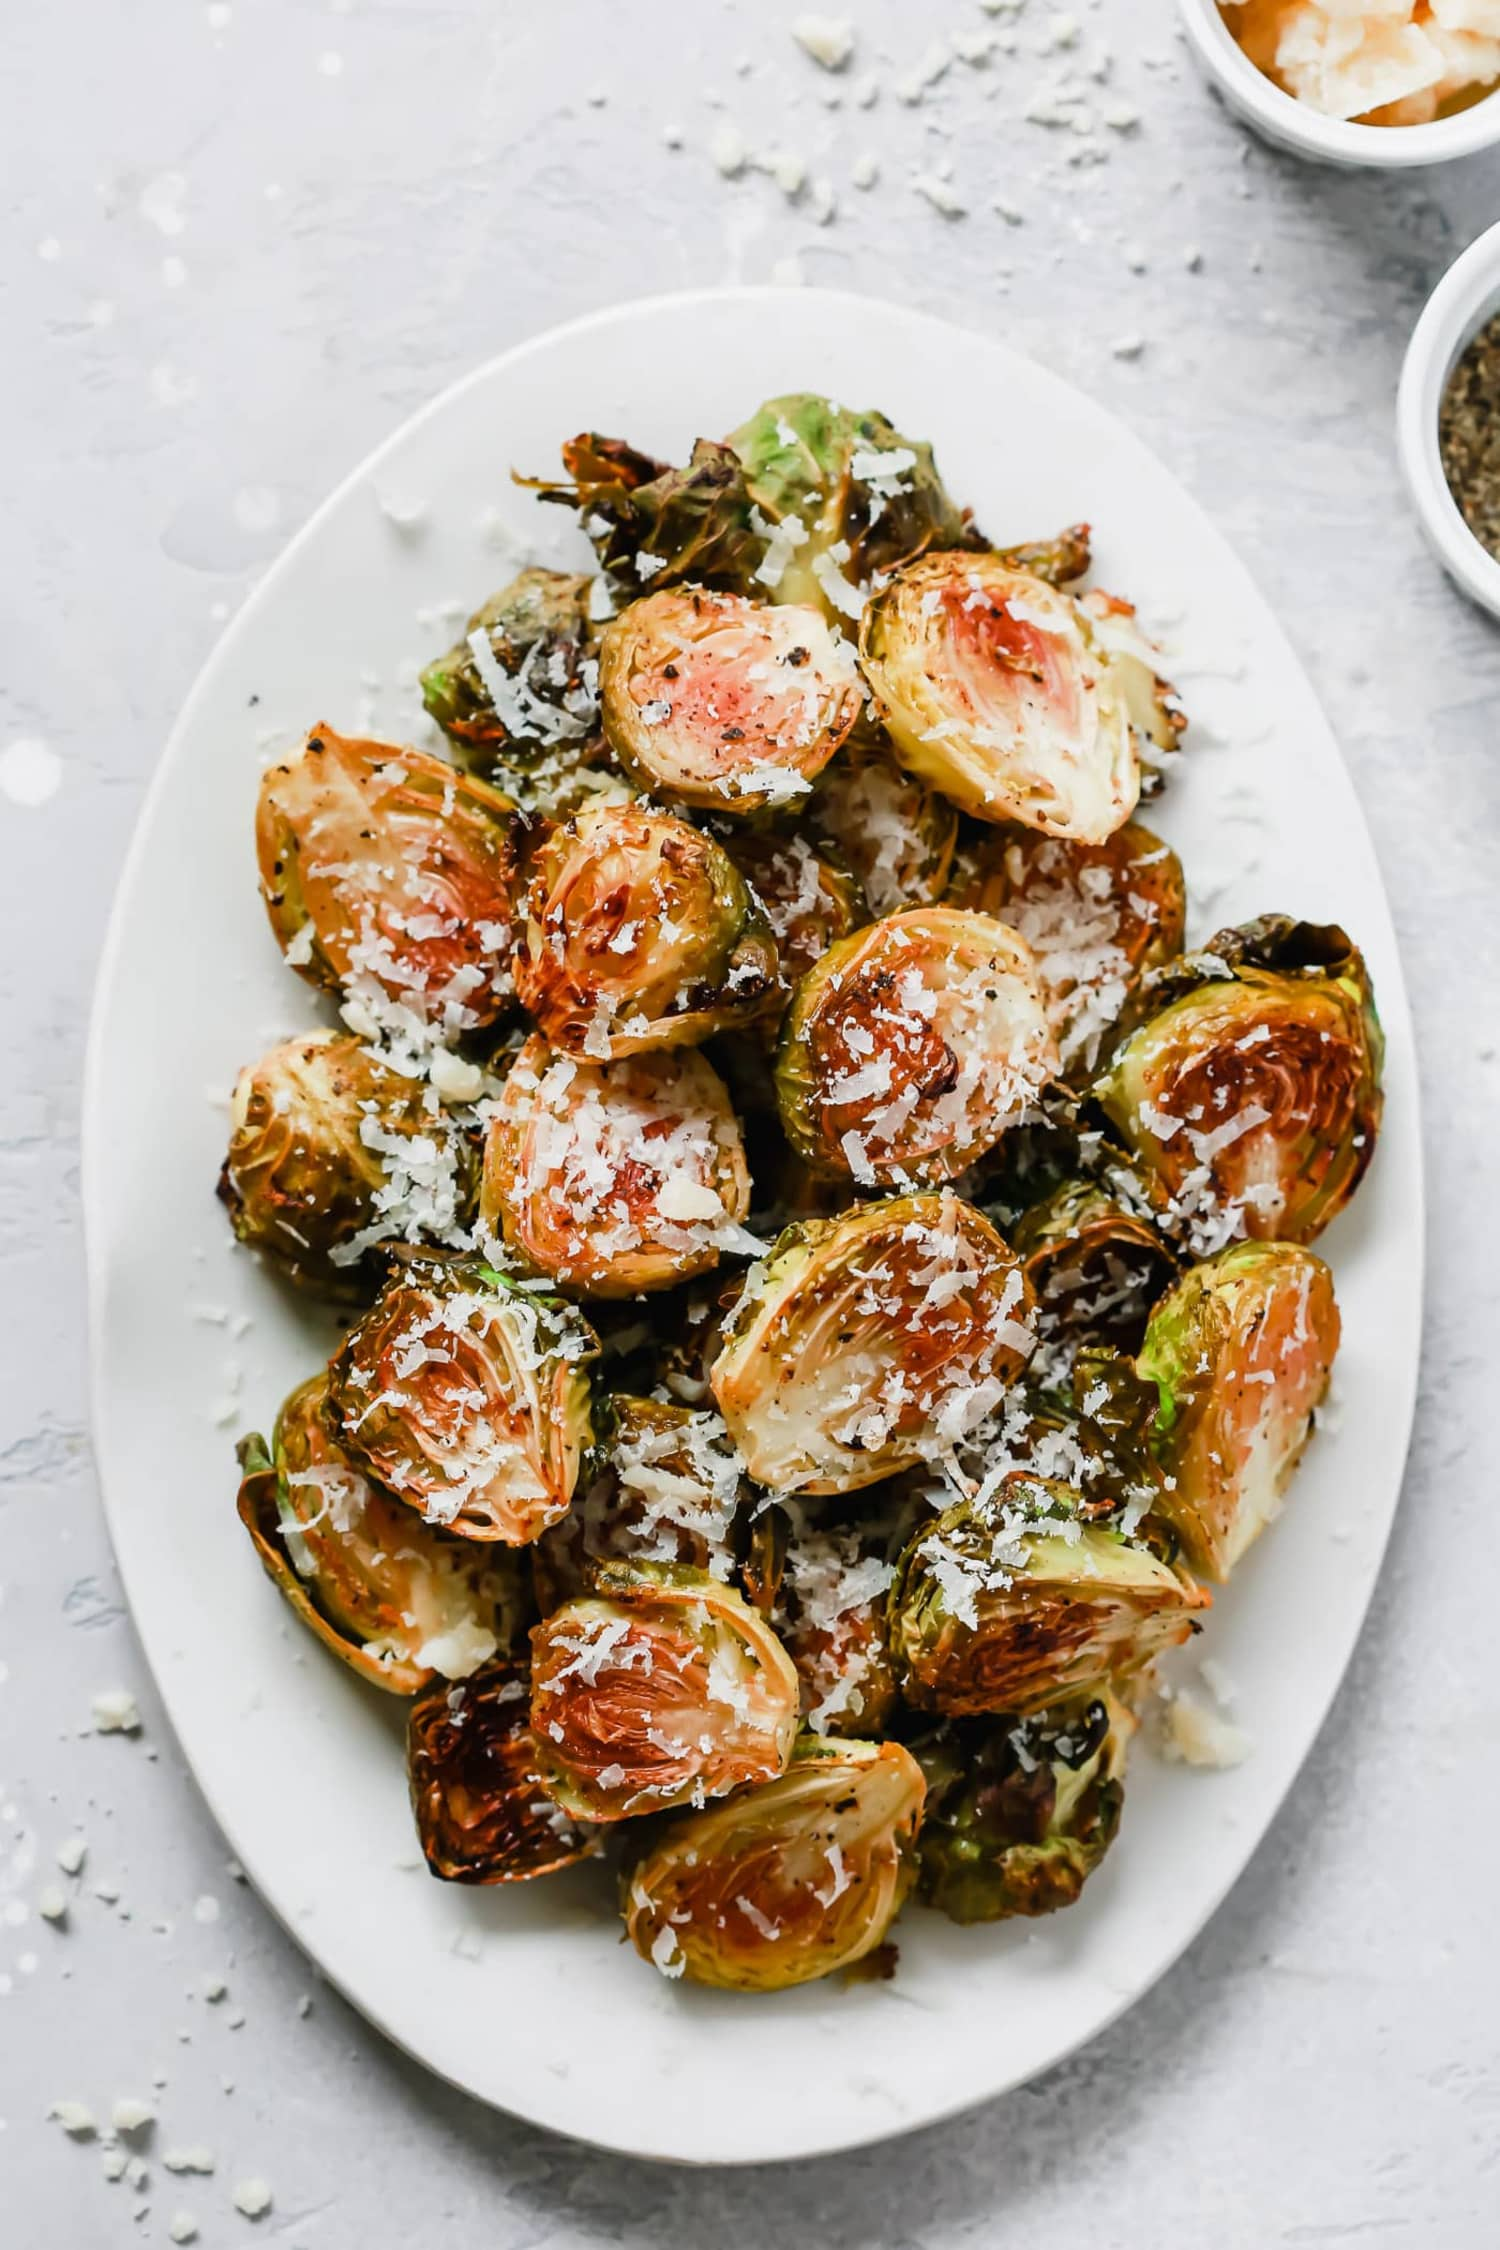 These Garlic-Parmesan Roasted Brussels Sprouts Are Calling Your Name